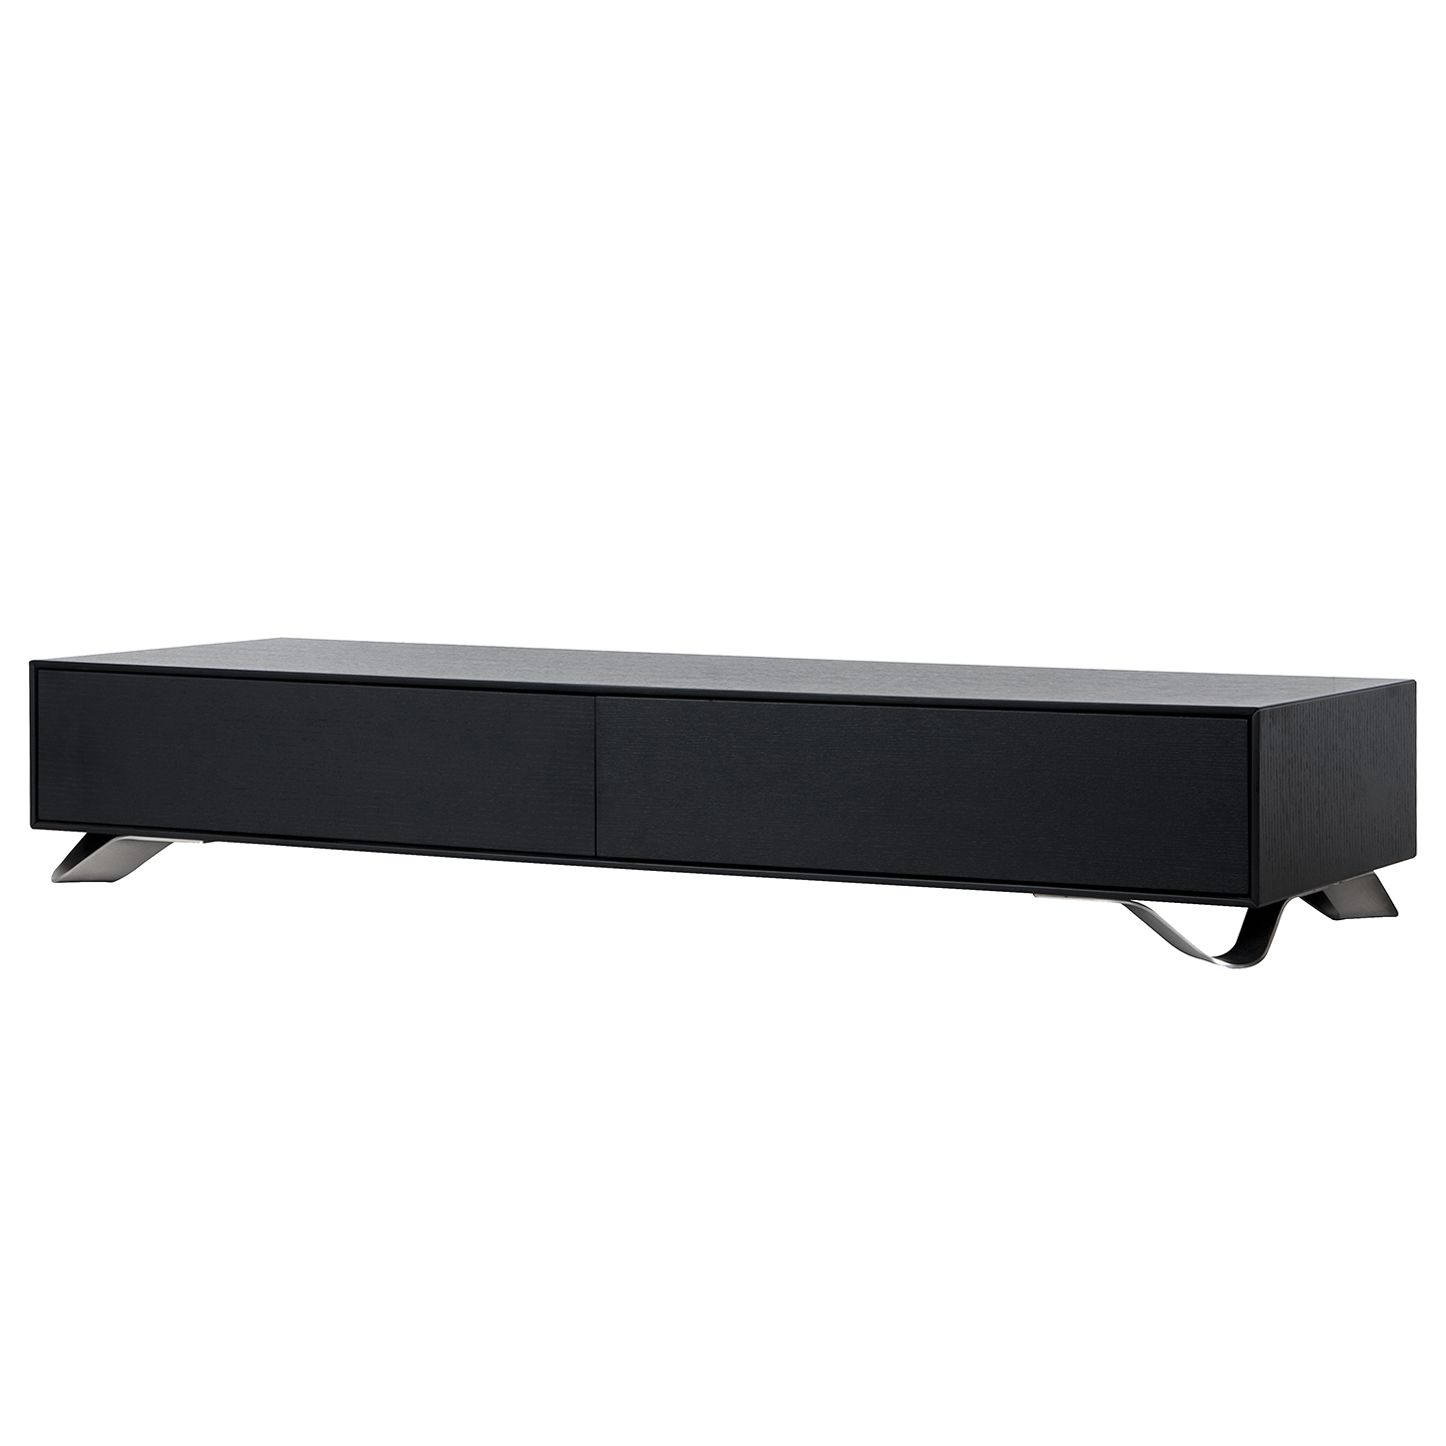 tv lowboard boomerang ii schwarz online bestellen. Black Bedroom Furniture Sets. Home Design Ideas